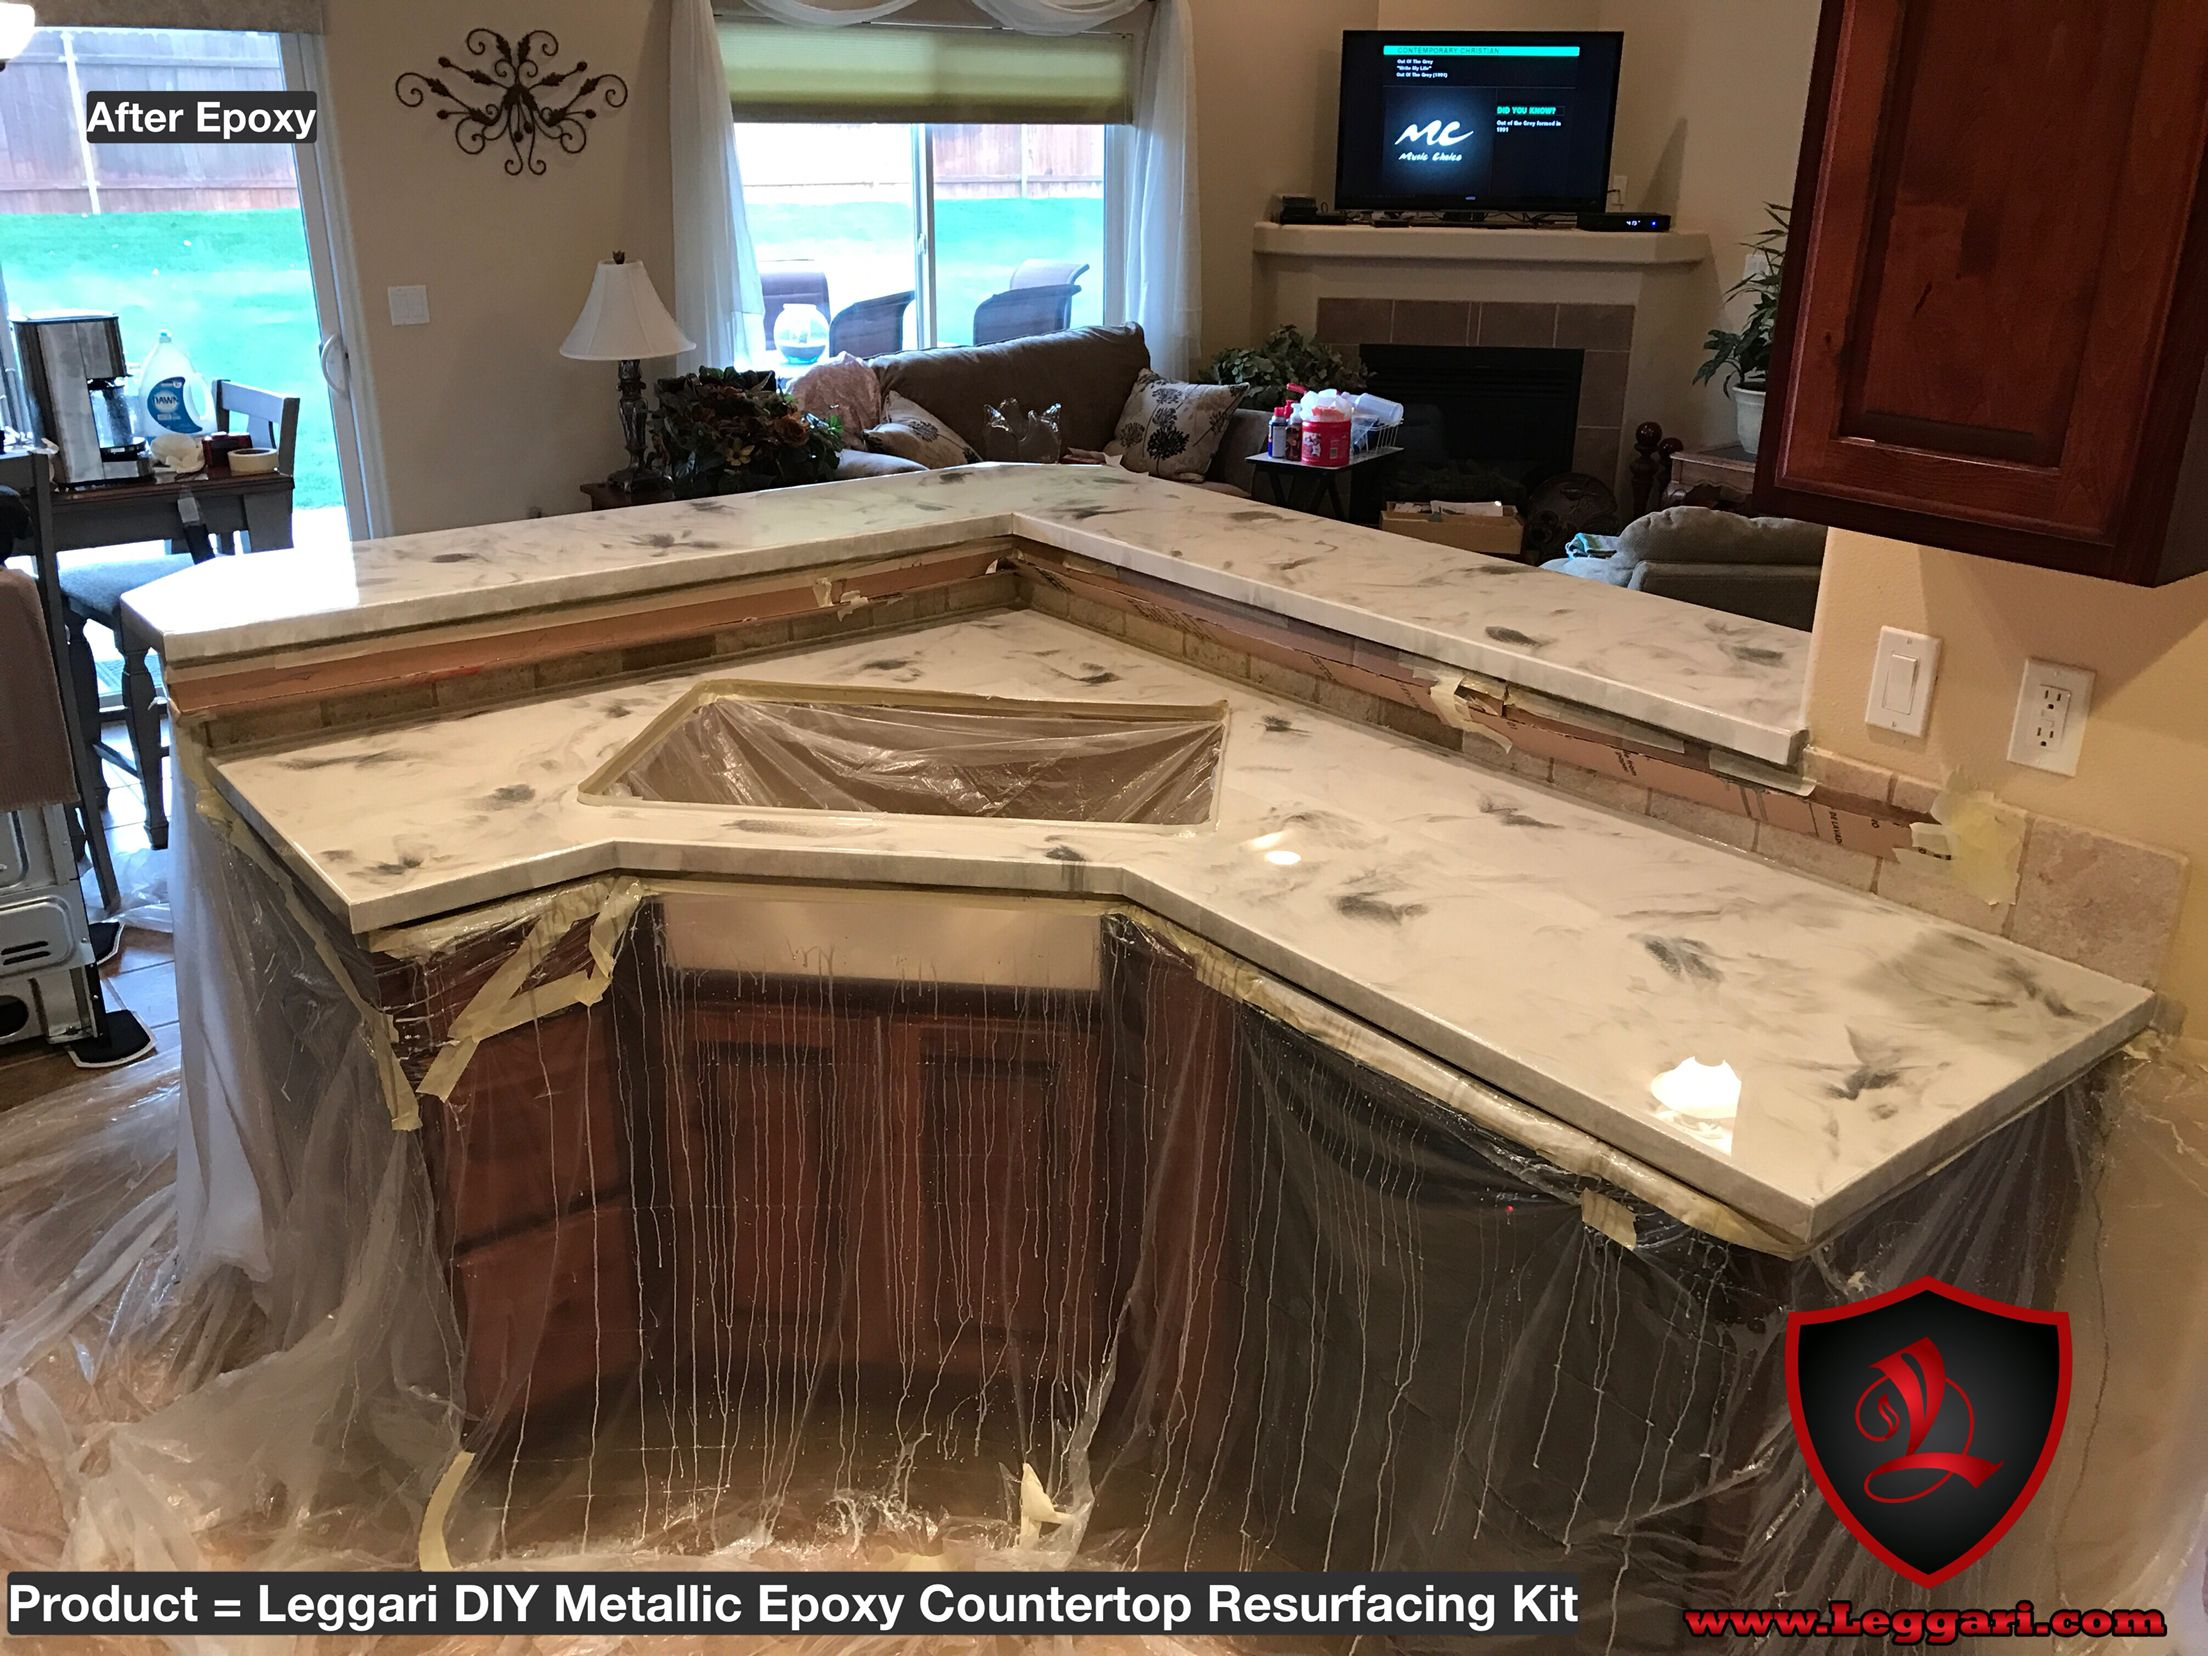 Awesome #diy #metallic #epoxy #countertop #kit Installed In A #kitchen Right Over  The Existing #Formica Our Kits Are As Easy To Install As Painting A Wall  And Can ...